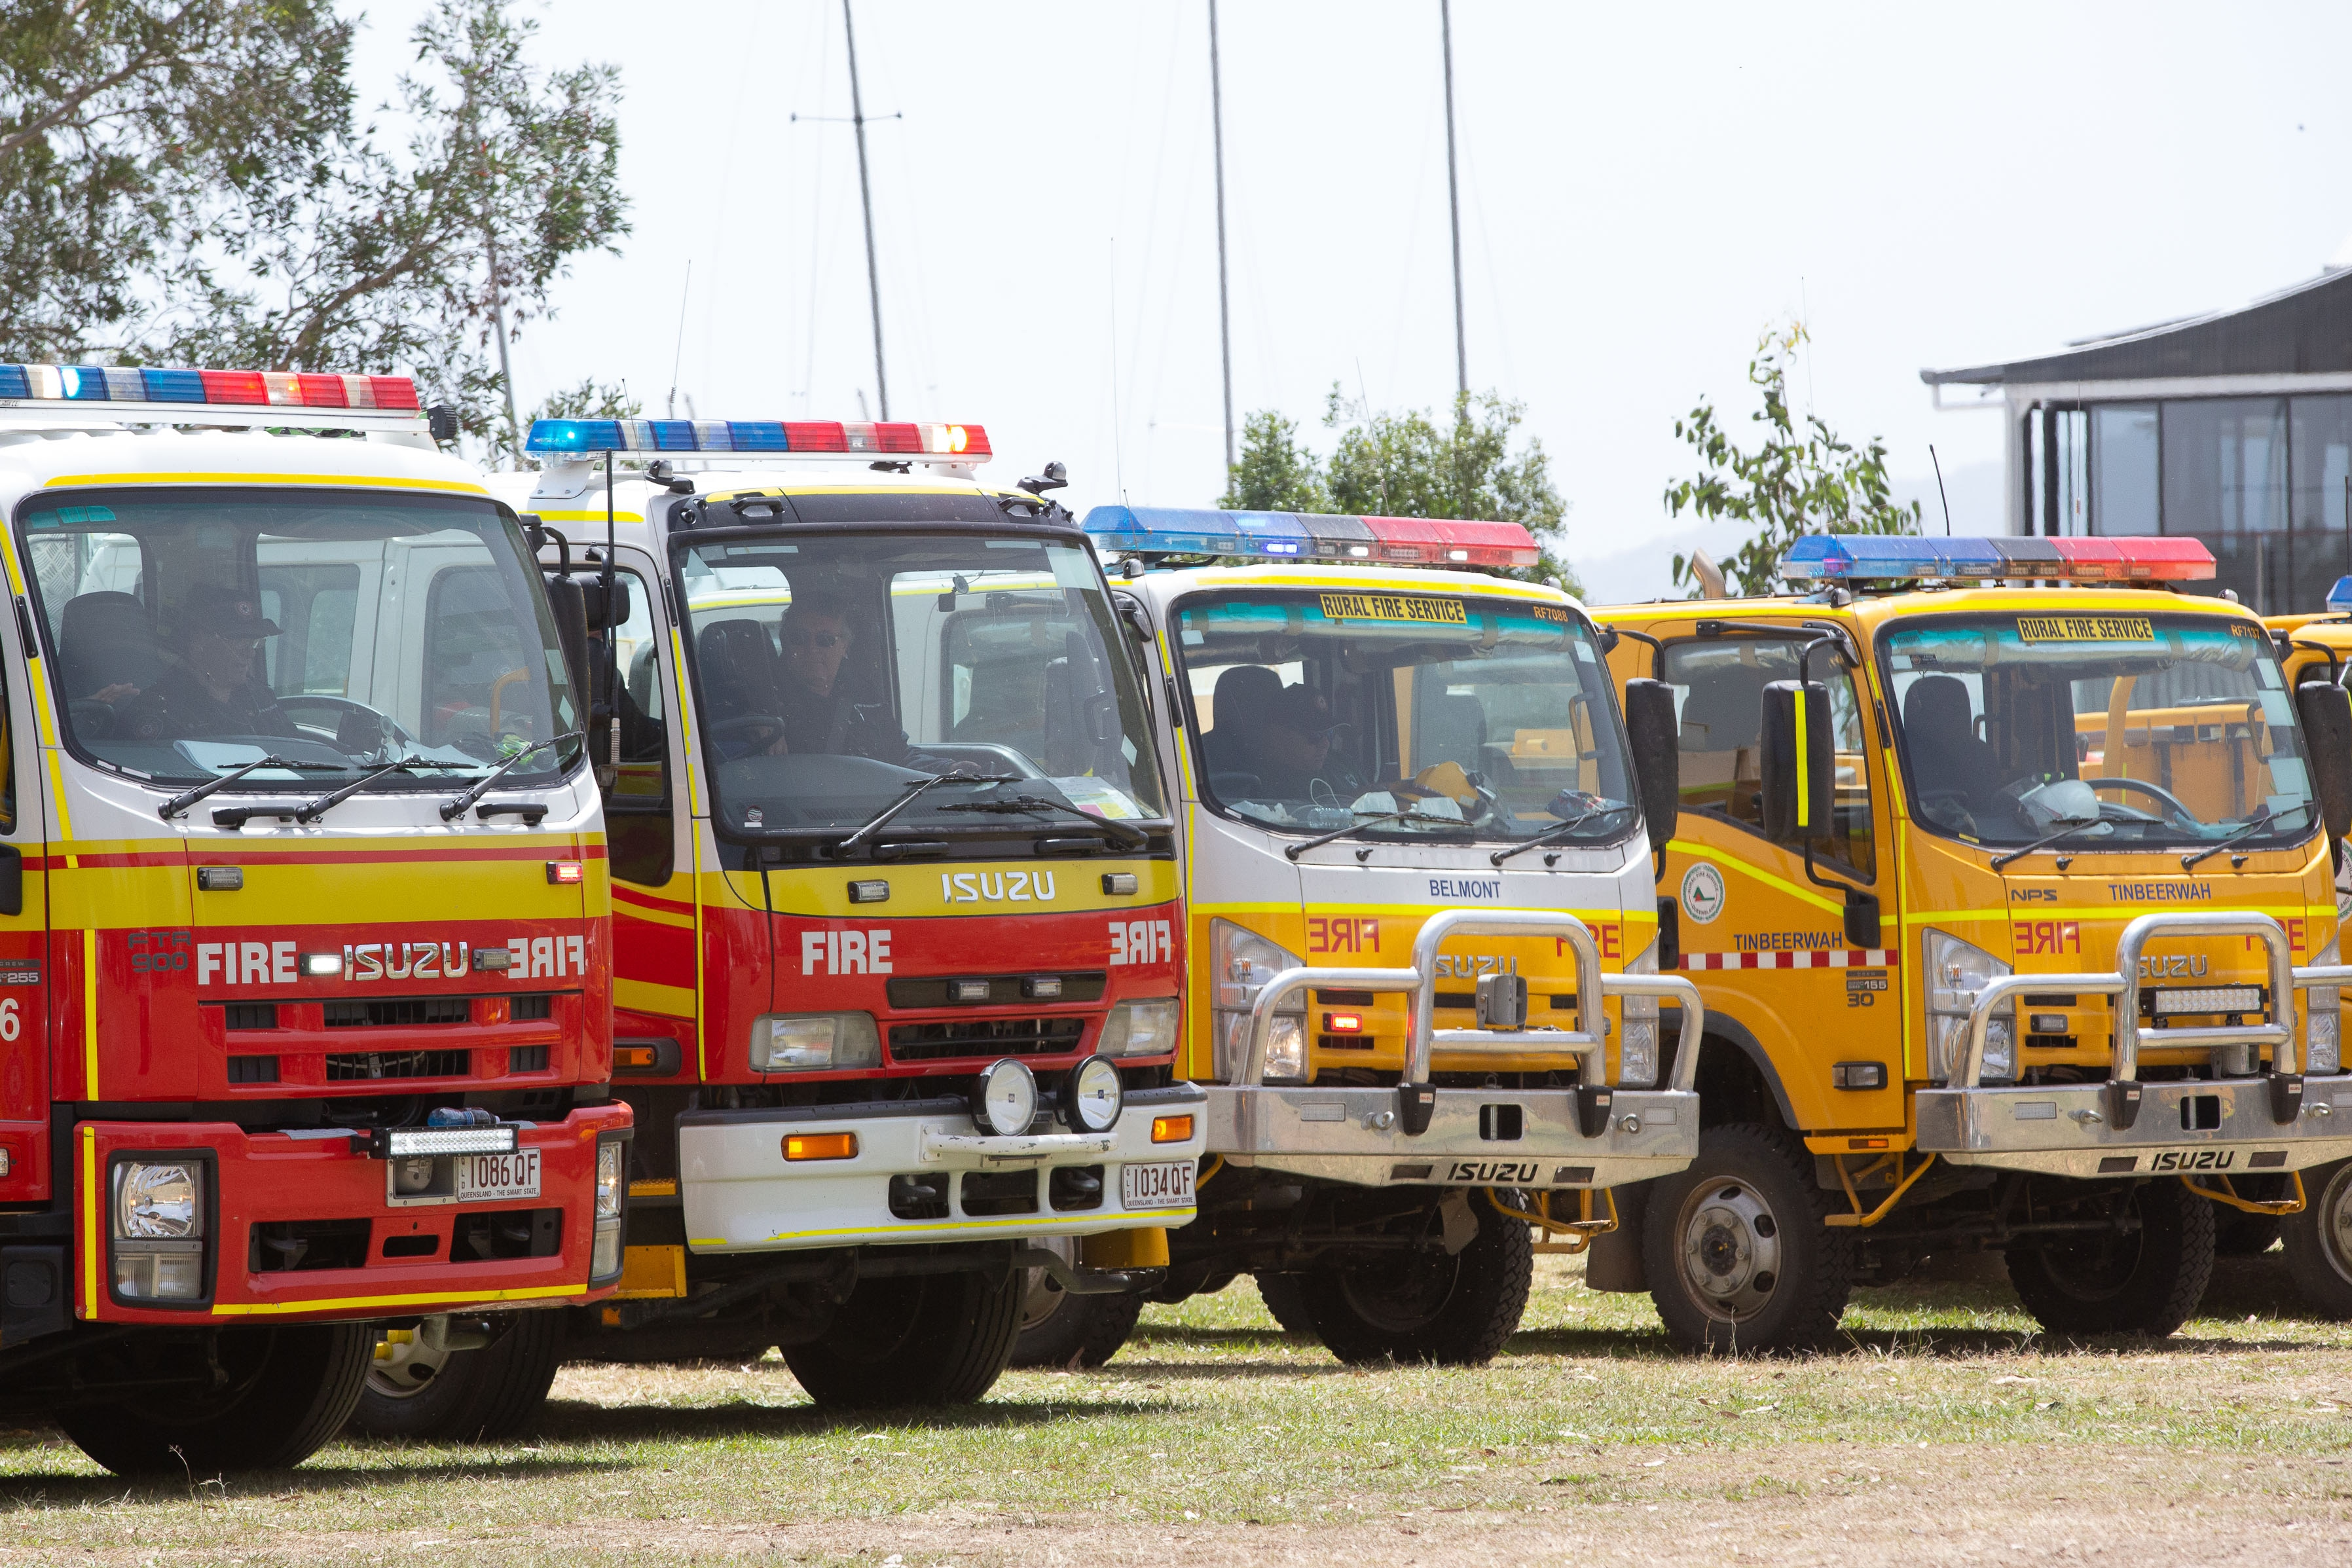 Fire trucks are seen lined up at Cooroibah in Noosa Shire, Queensland, Saturday, November 9, 2019. Thousands of residents who were evacuated from Noosa to escape the path of a bushfire are unable to go home. (AAP Image/Rob Maccoll) NO ARCHIVING